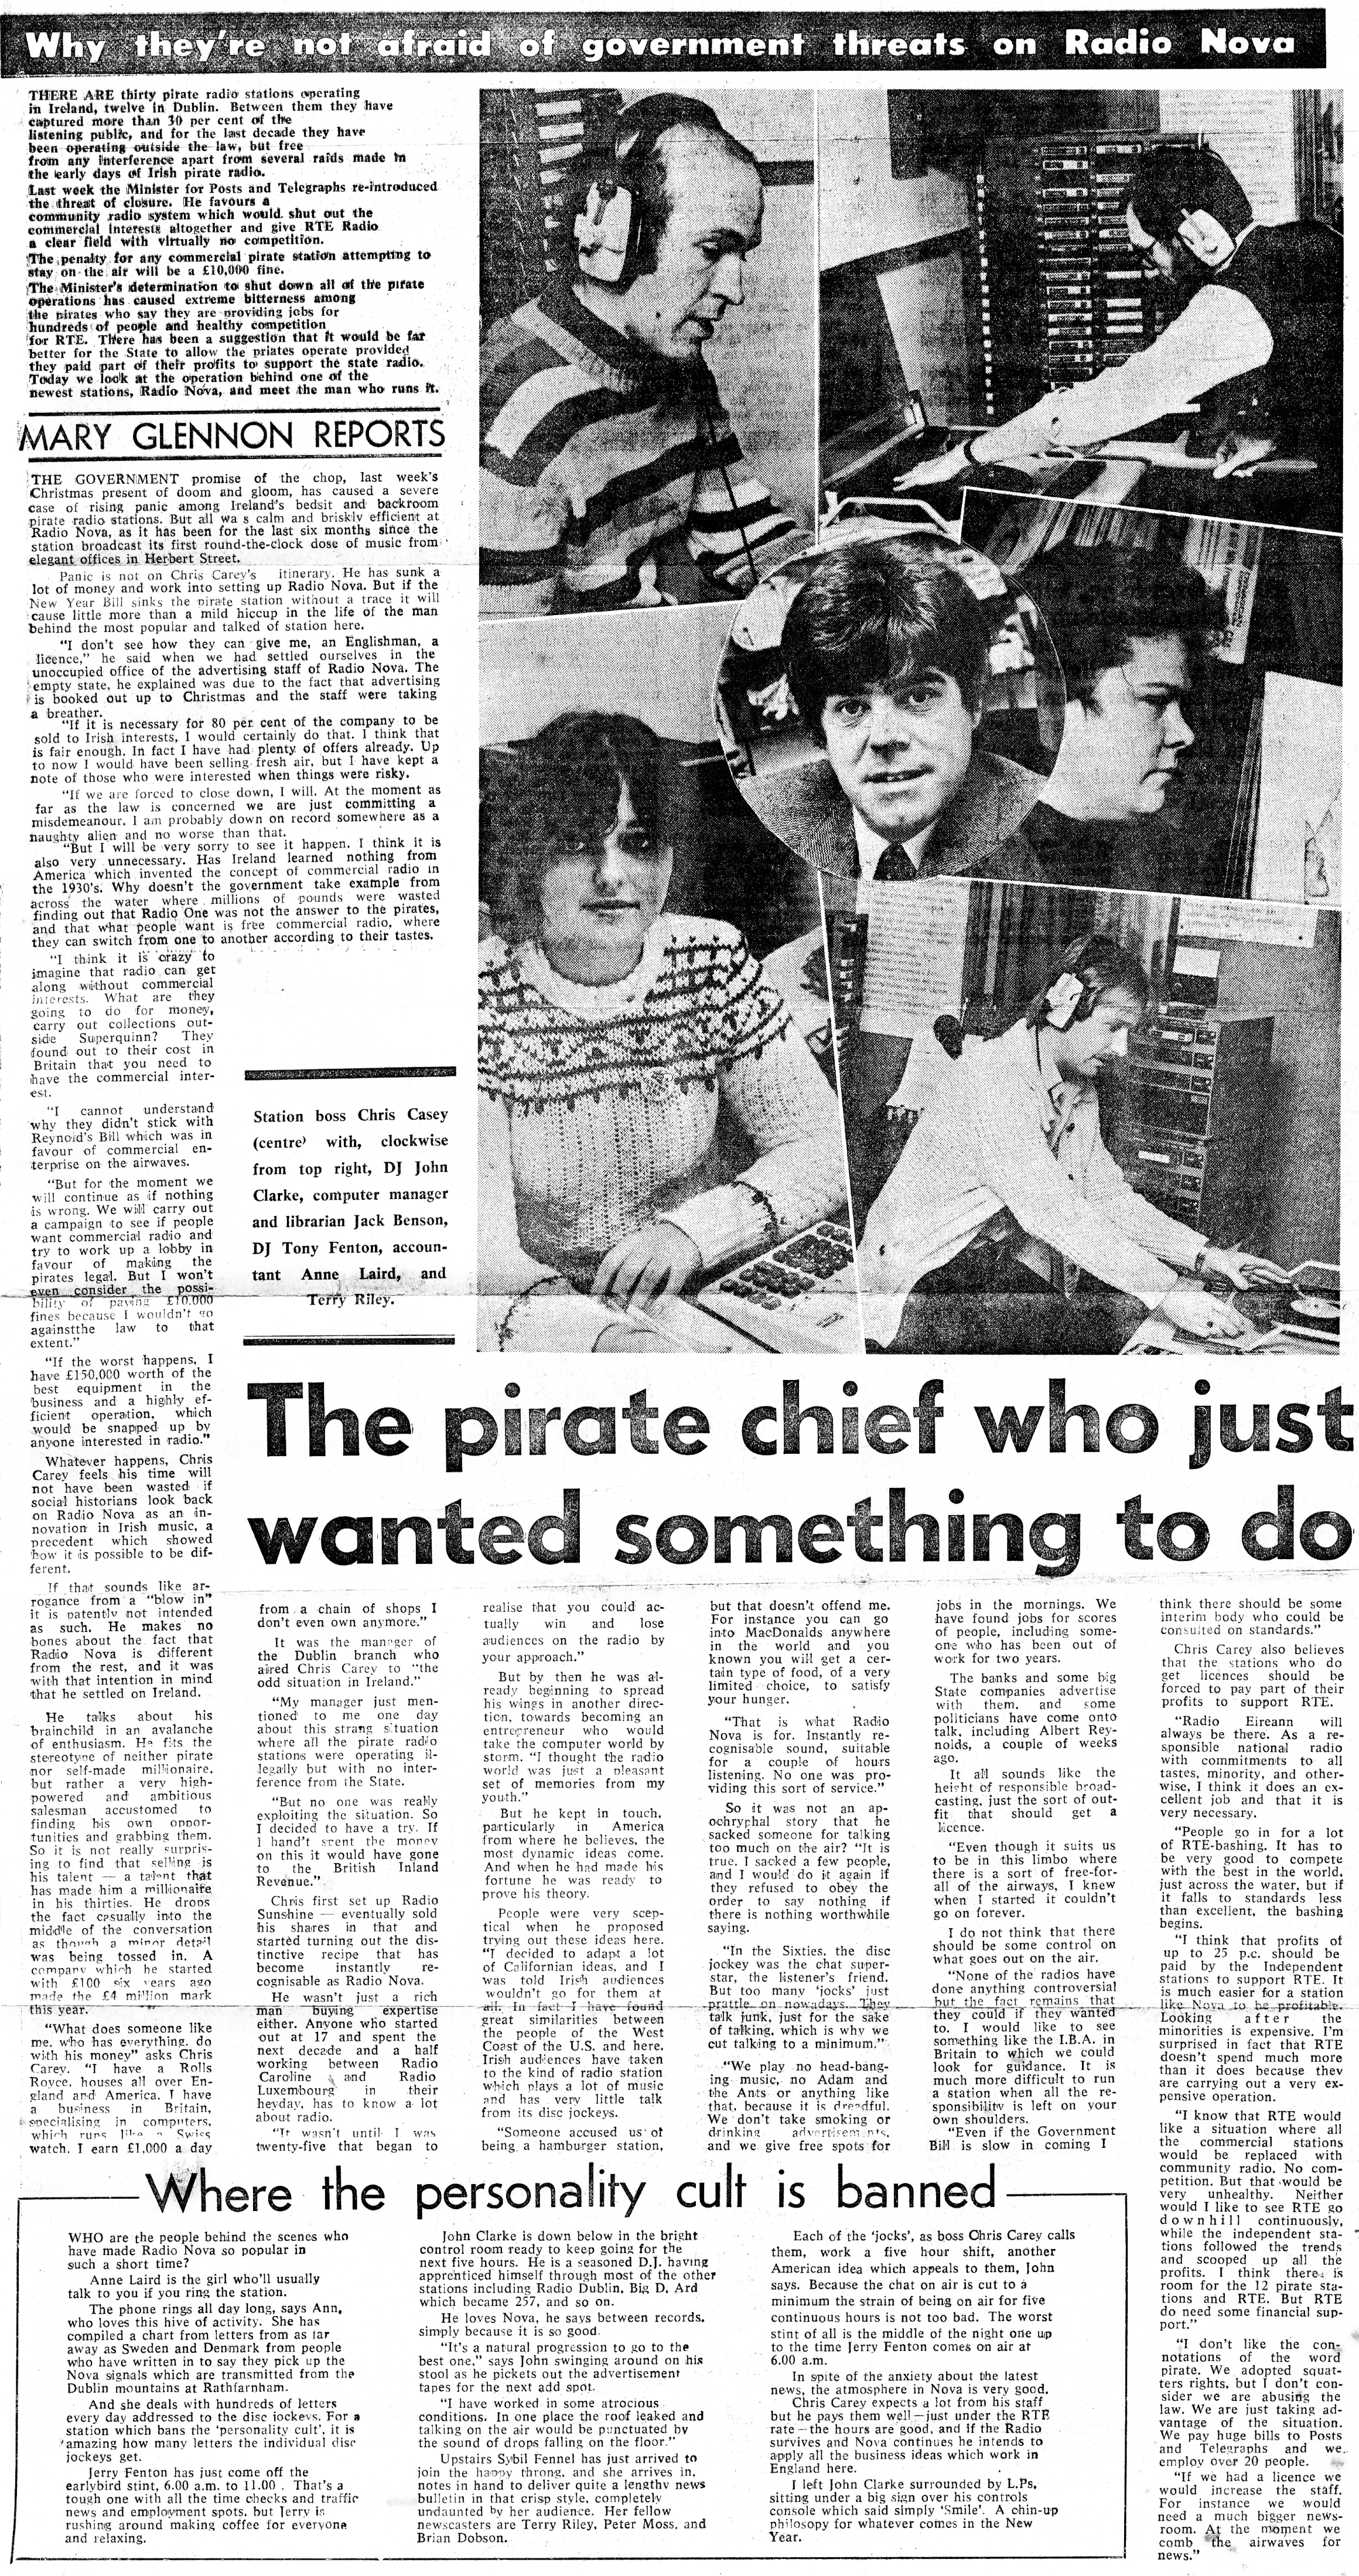 Why they're not afraid of government threats in Radio Nova was a newspaper headline from the Evening Herald dated December 8th 1981